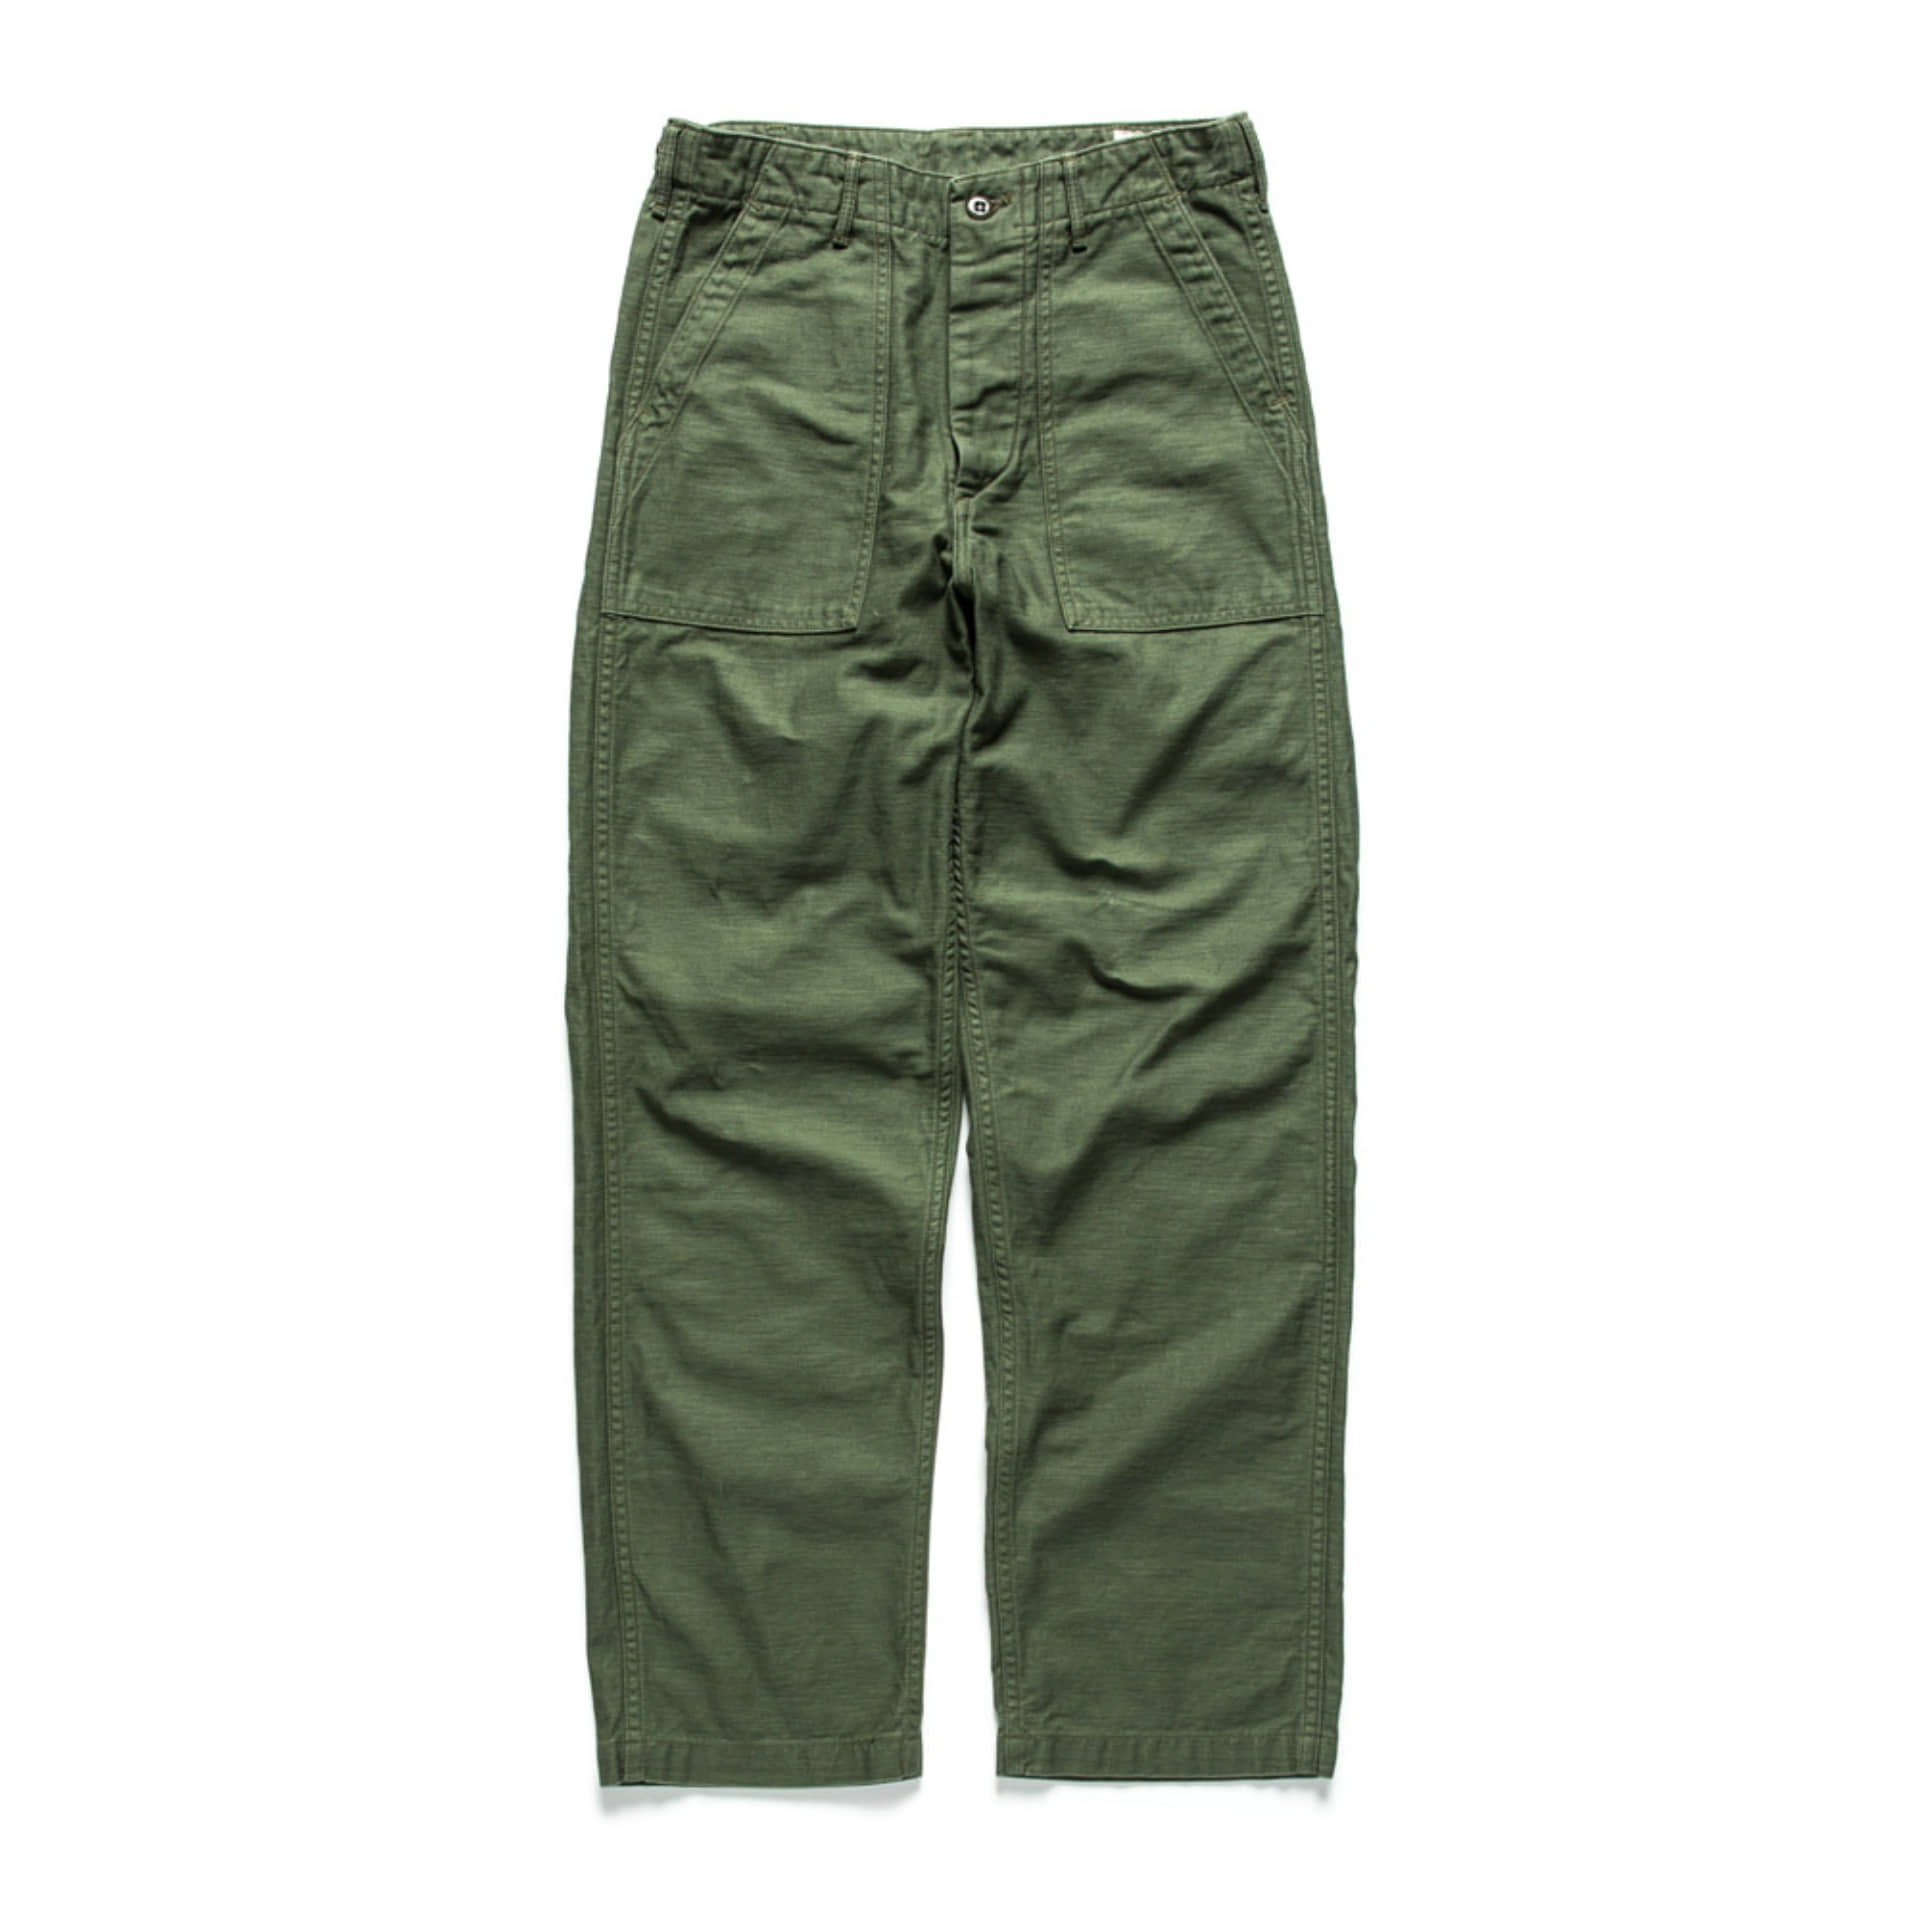 (RESTOCK)US ARMY FATIGUE PANTS Original Fit (Olive Green)